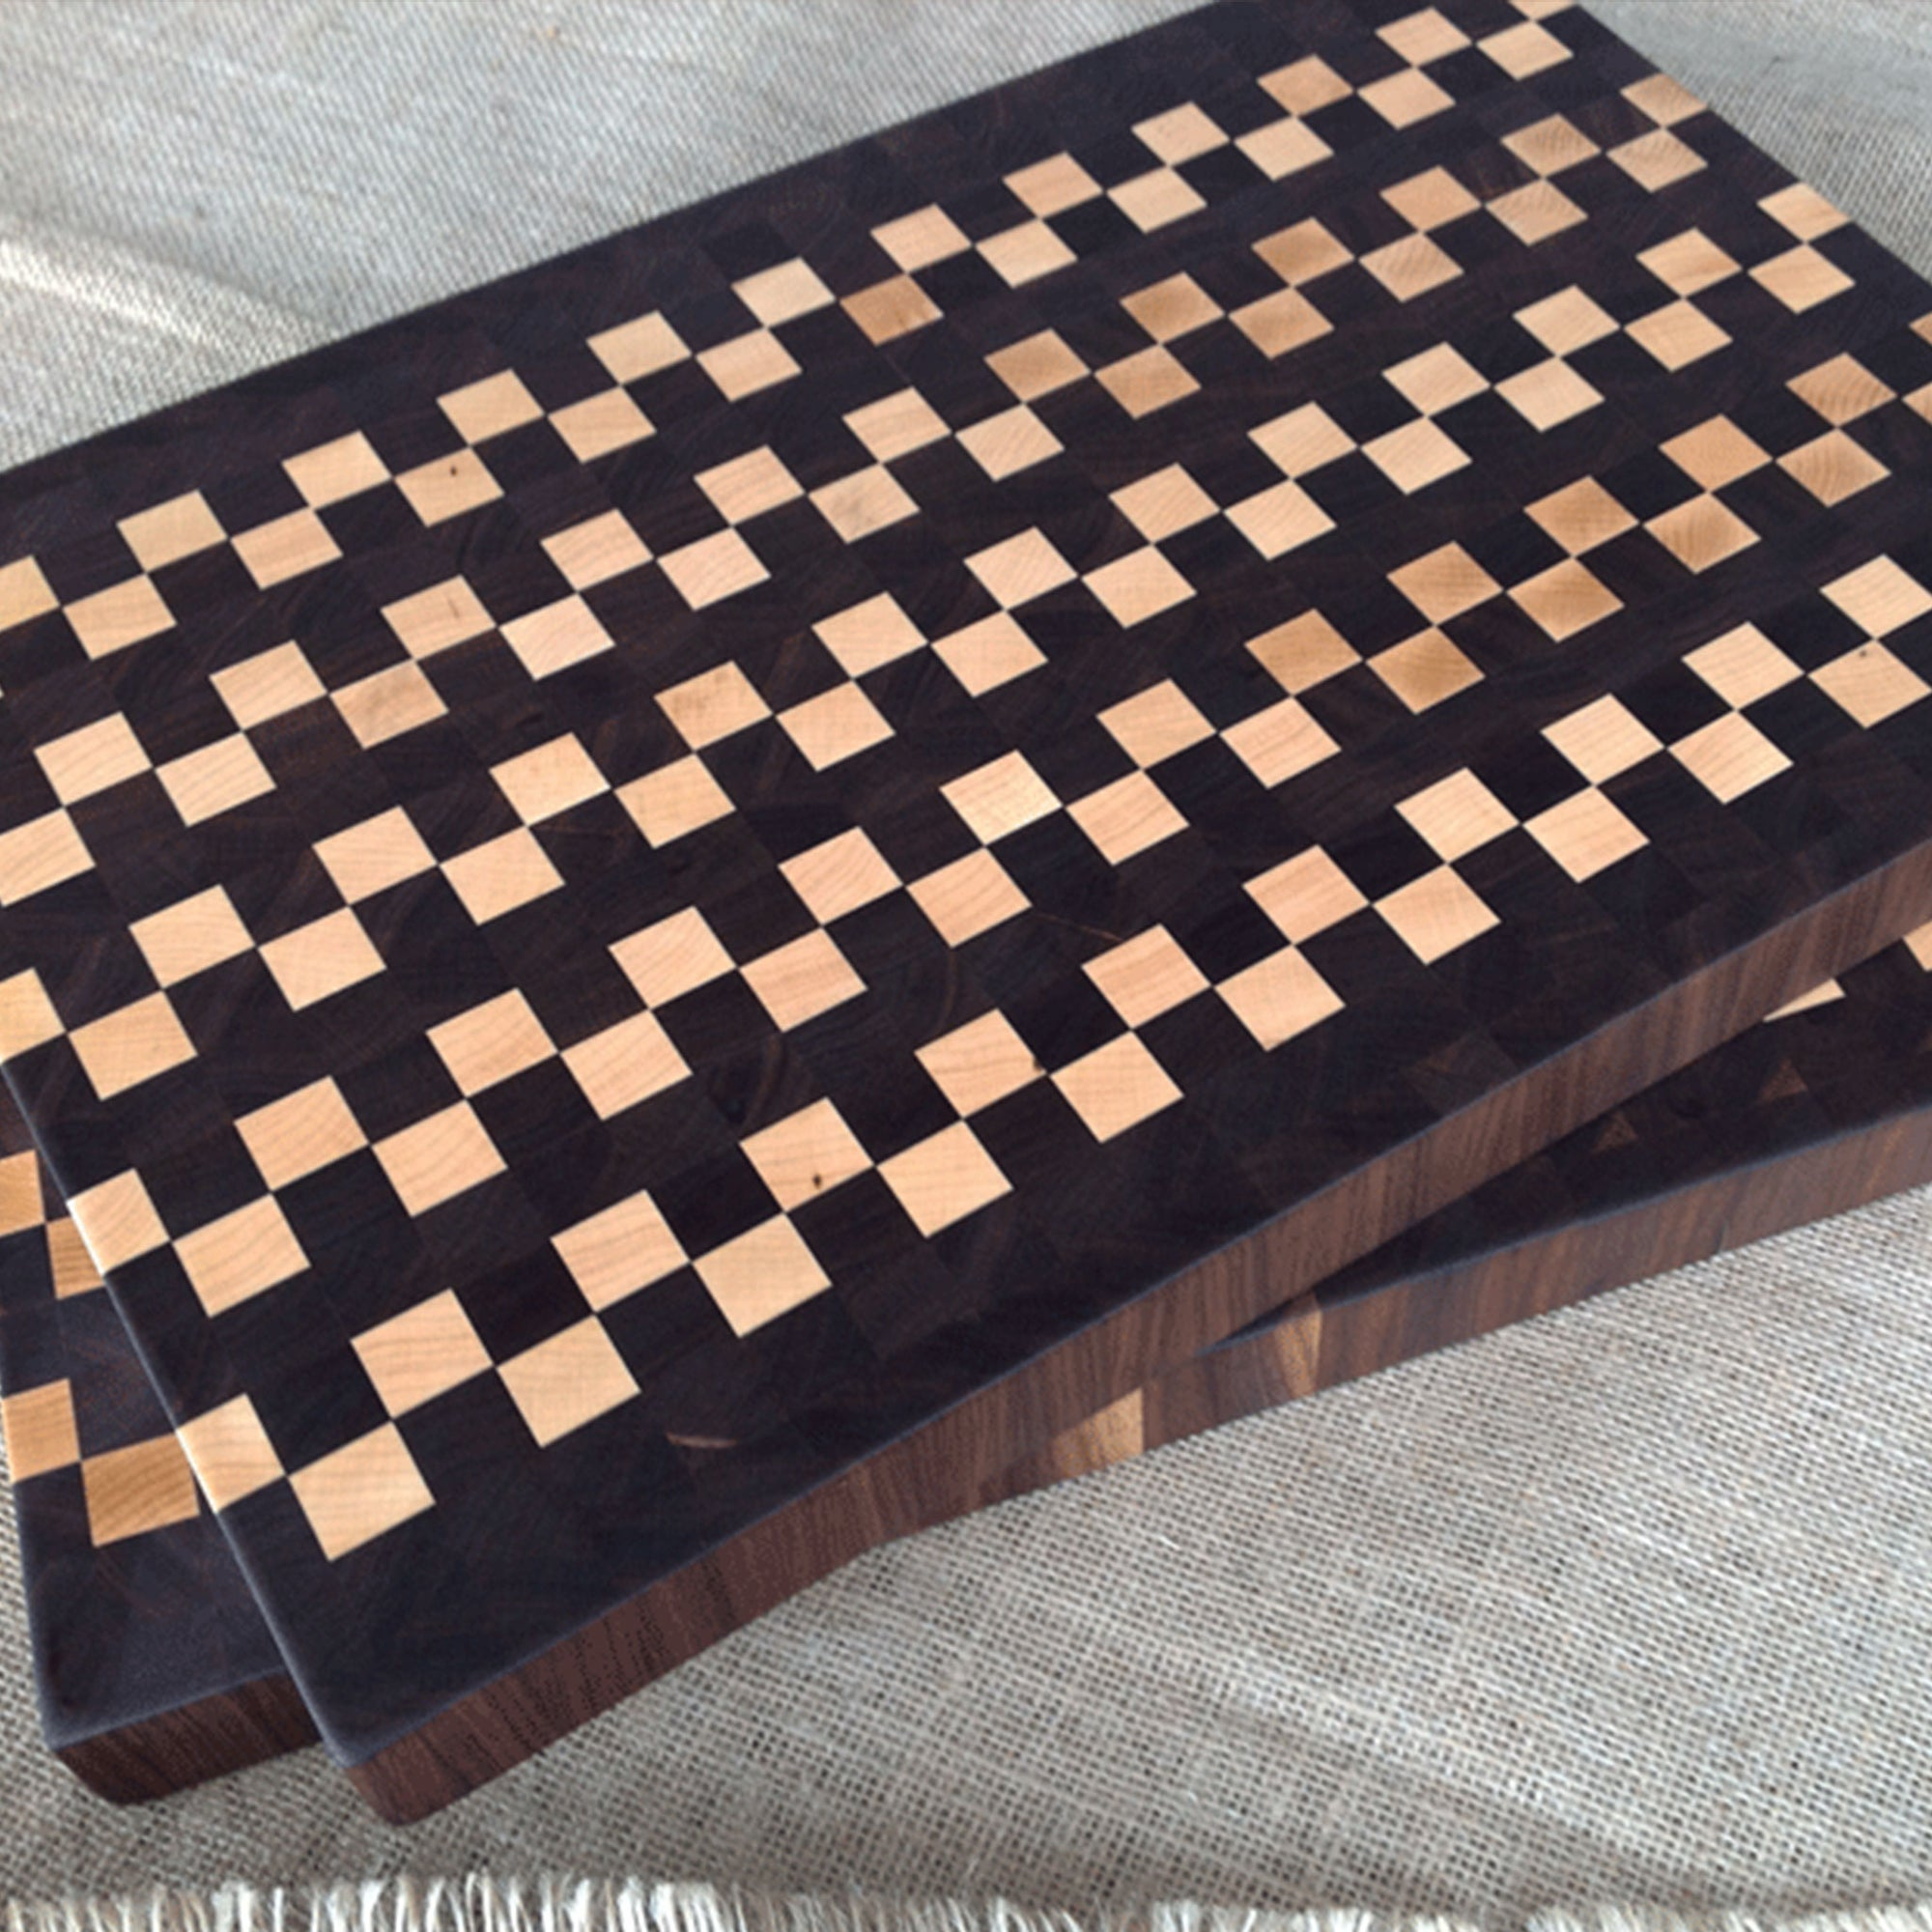 The Making of a Black Walnut and Maple End Grain Cutting Board